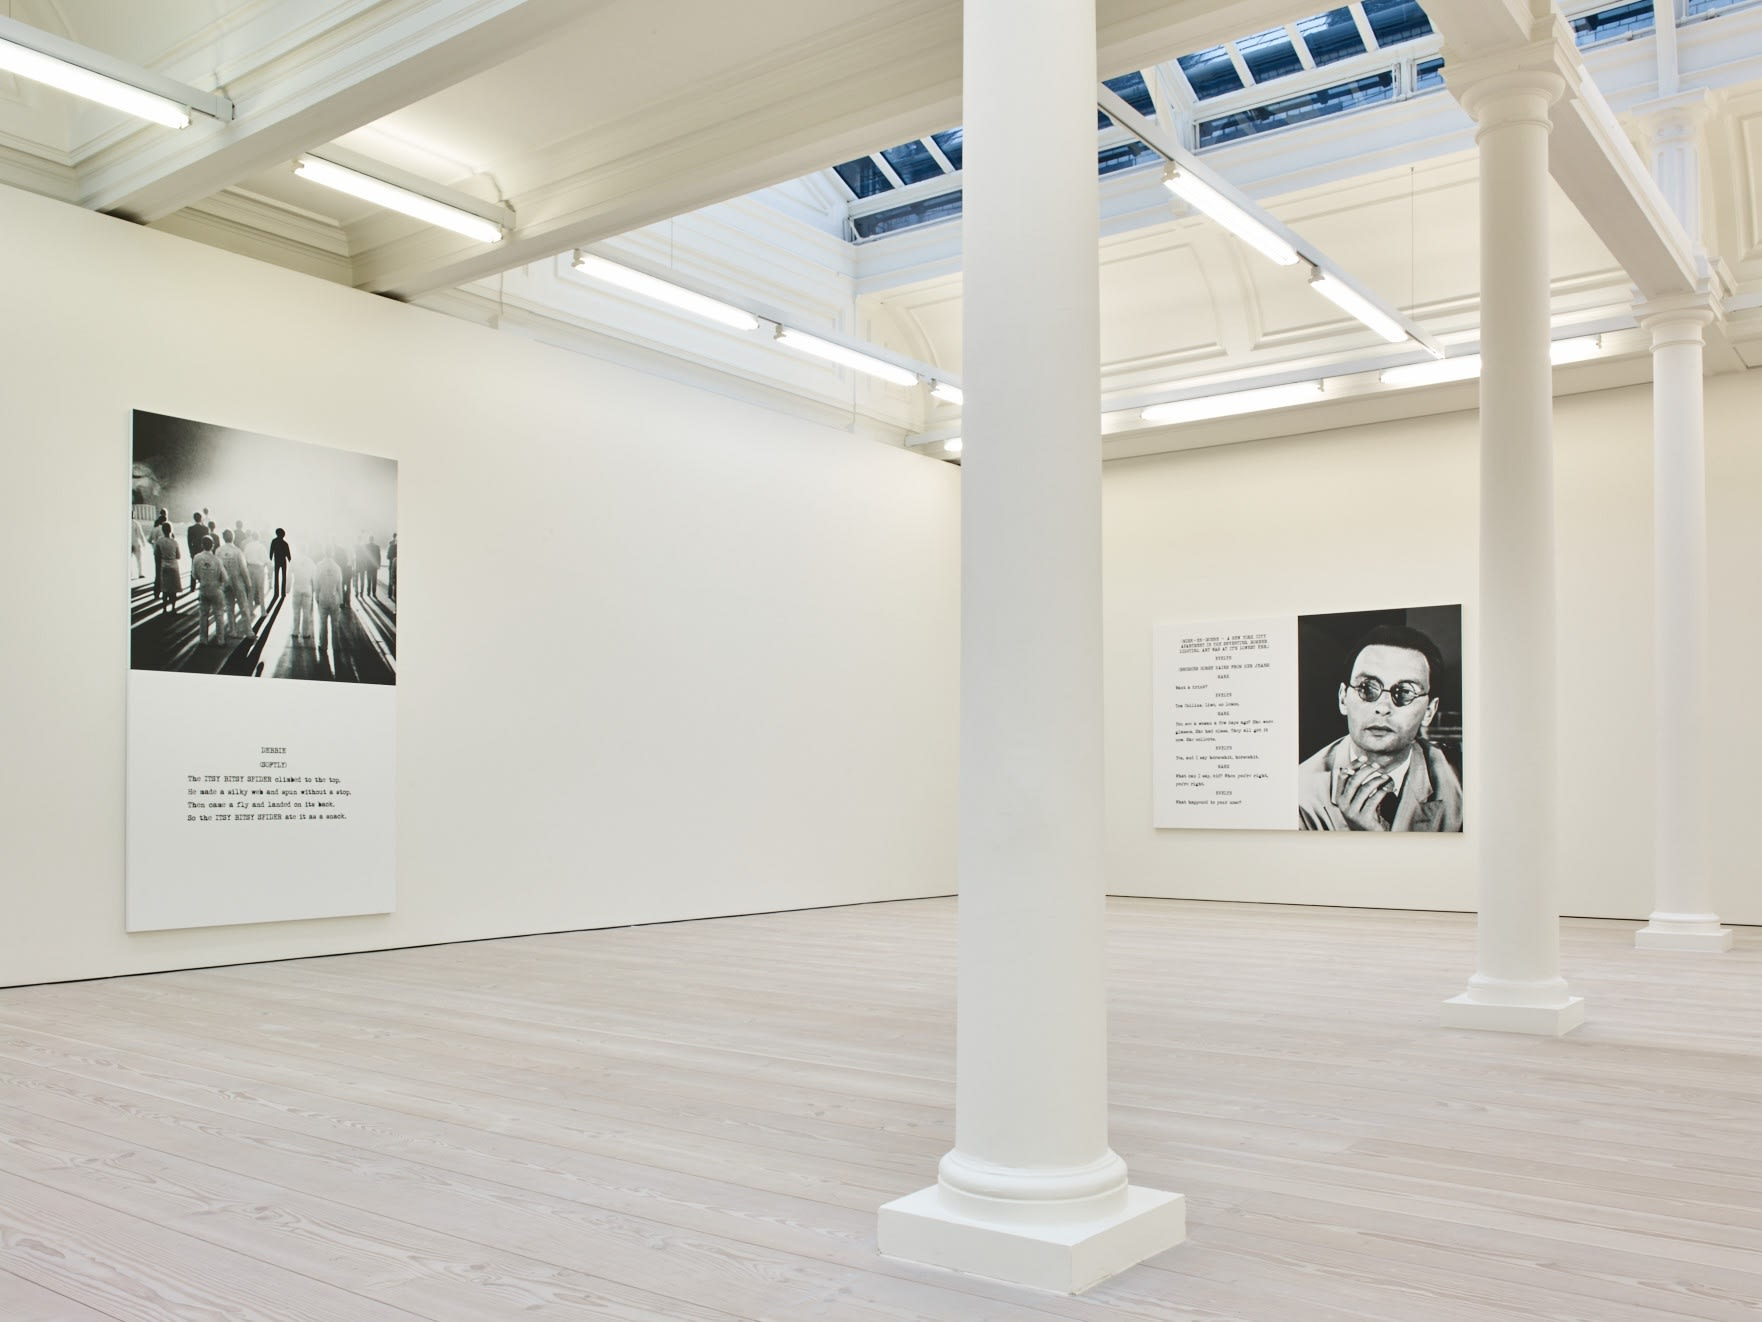 In a large white space with columns and a long skylight, 2 large paintings hang. Each are roughly half image and half text, which is in the format of a film script.